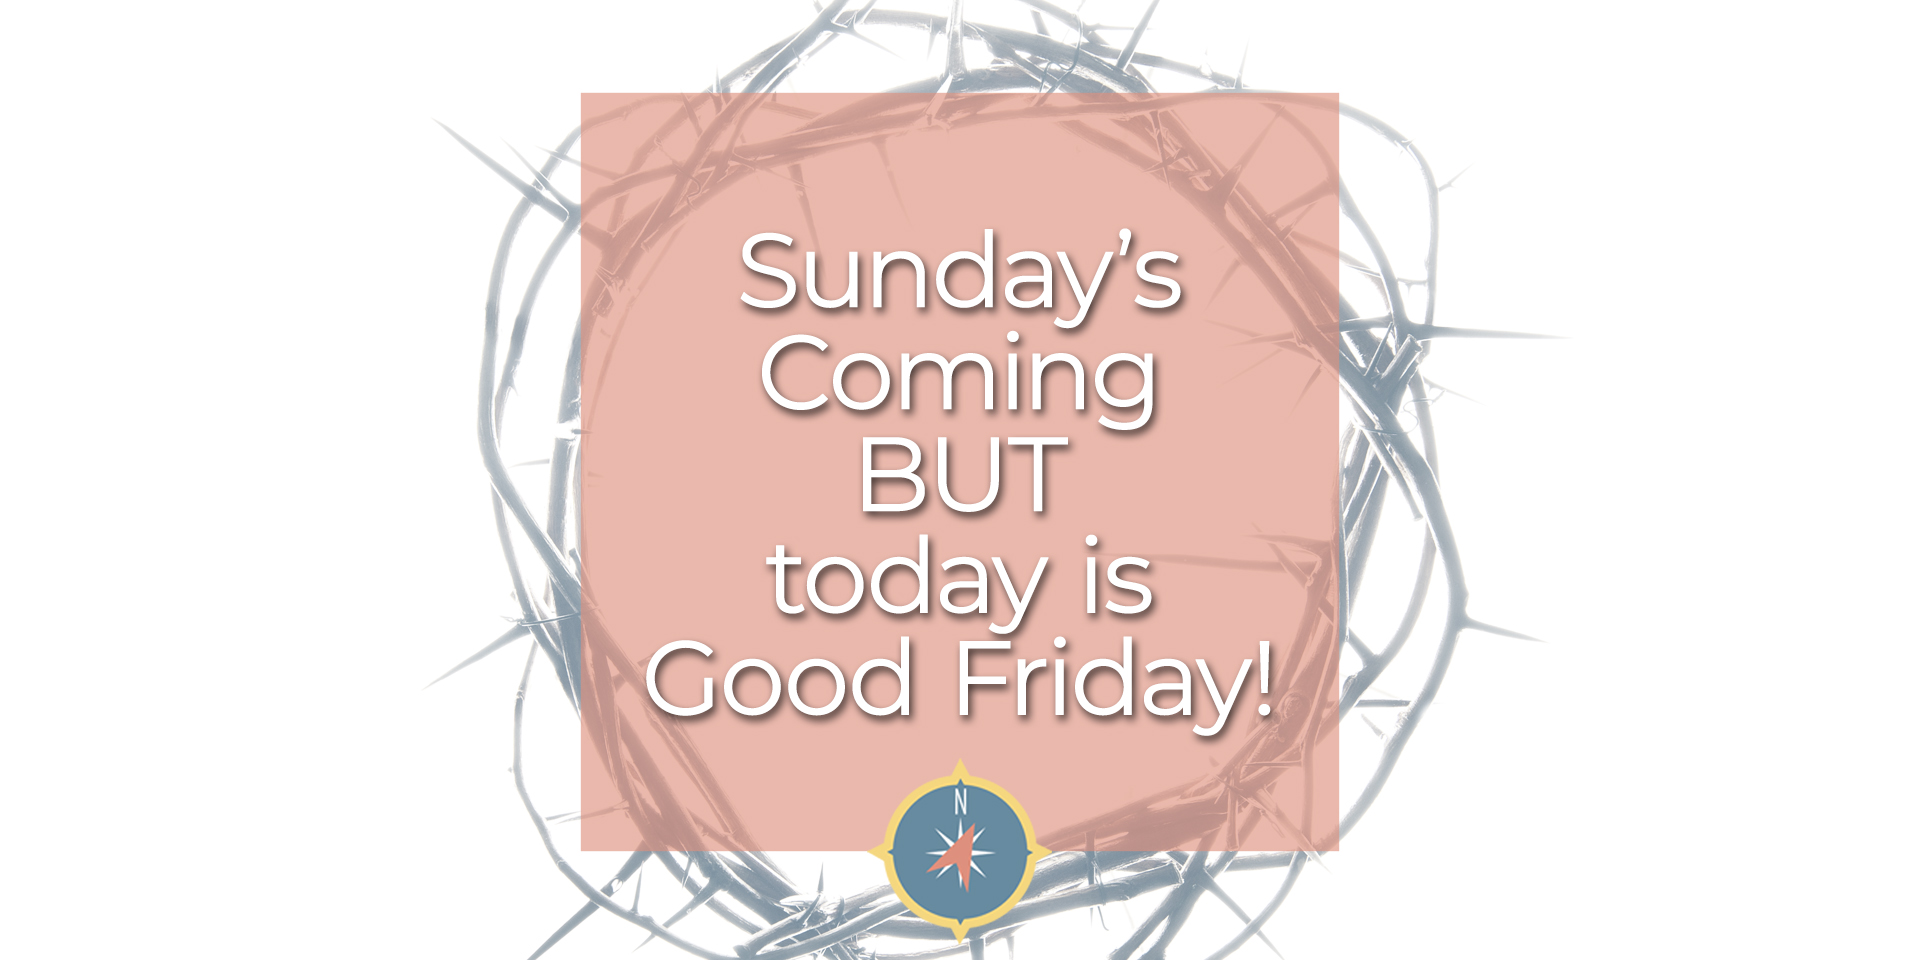 Sunday-is-coming-but-today-is-Good-Friday